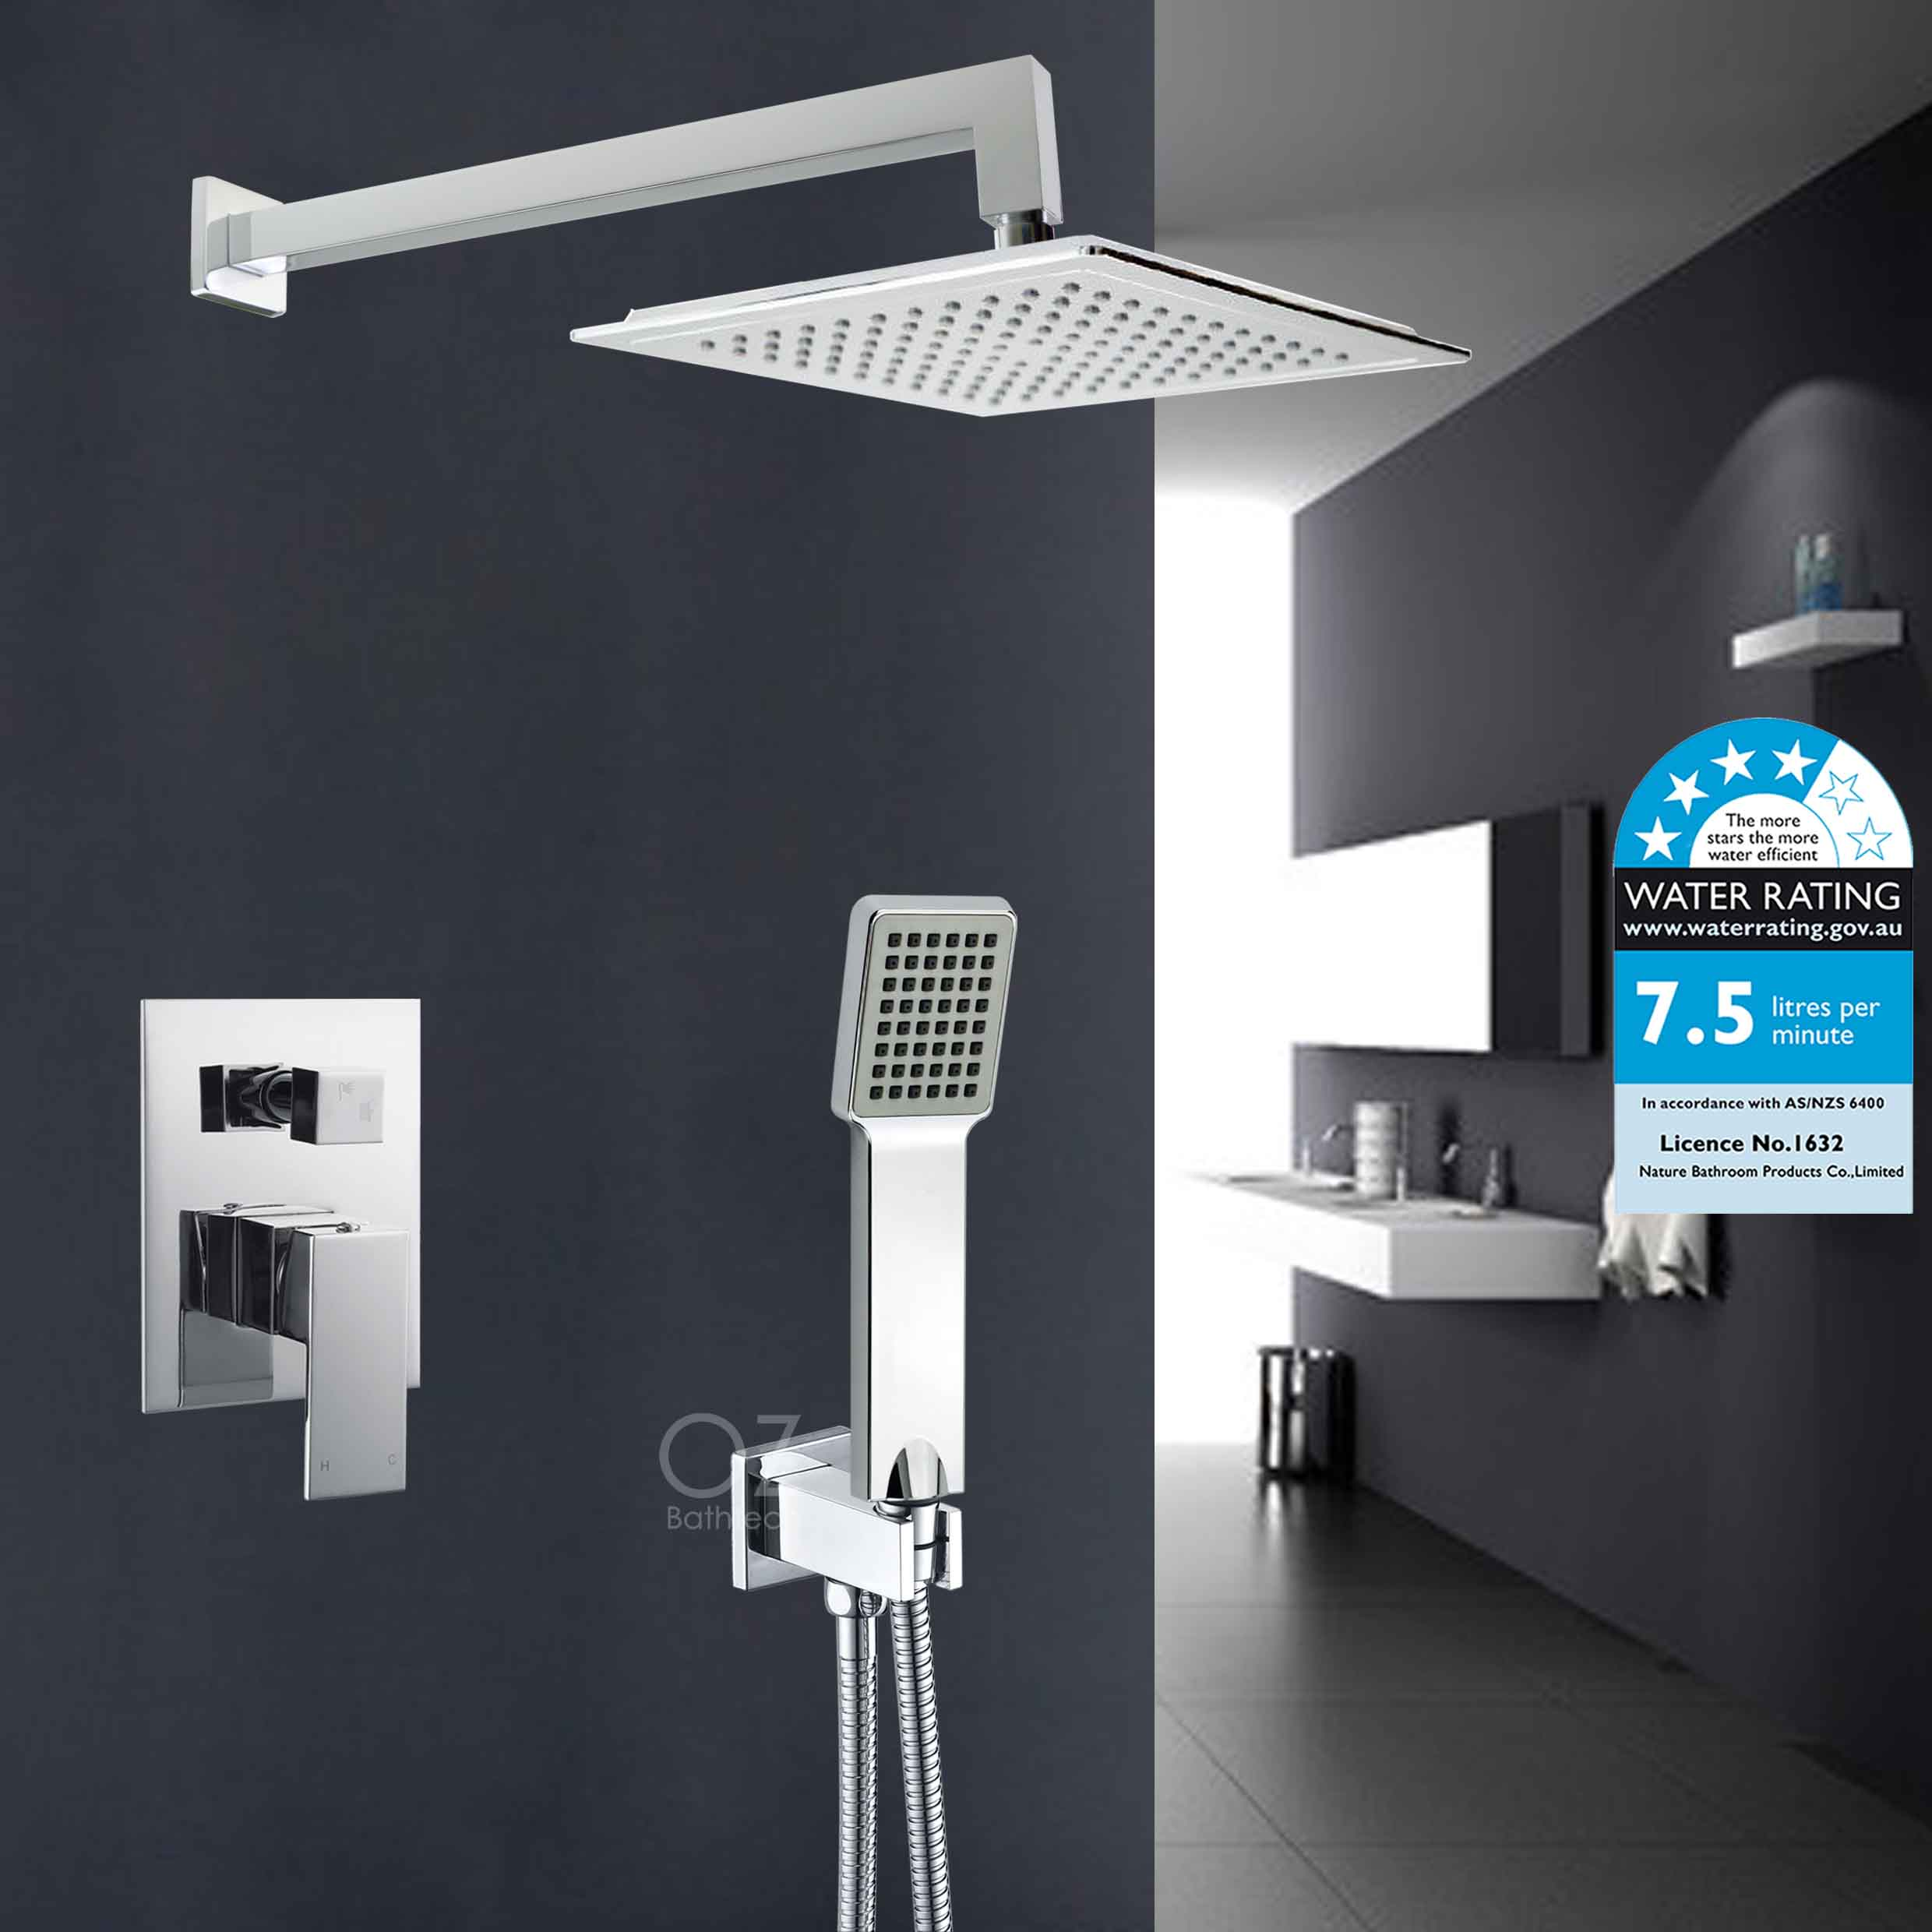 Details About Bathroom Square 9 Rain Shower Head Handheld Spray Wall Arm Mixer Diverter Set